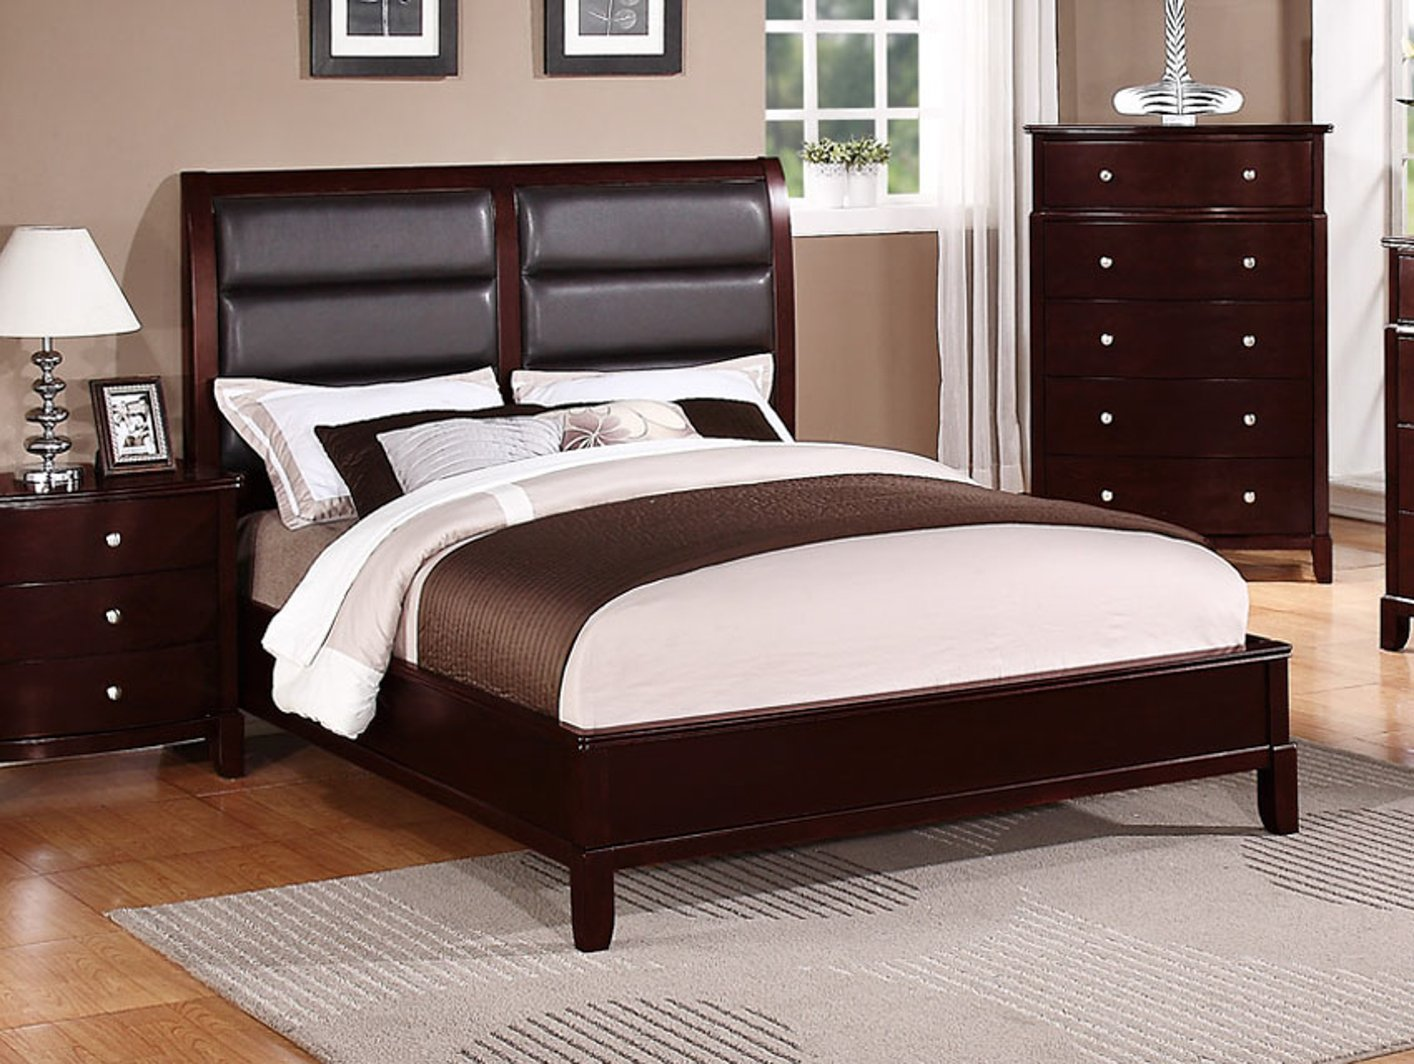 Poundex f9175ck california king bed in los angeles ca California king beds